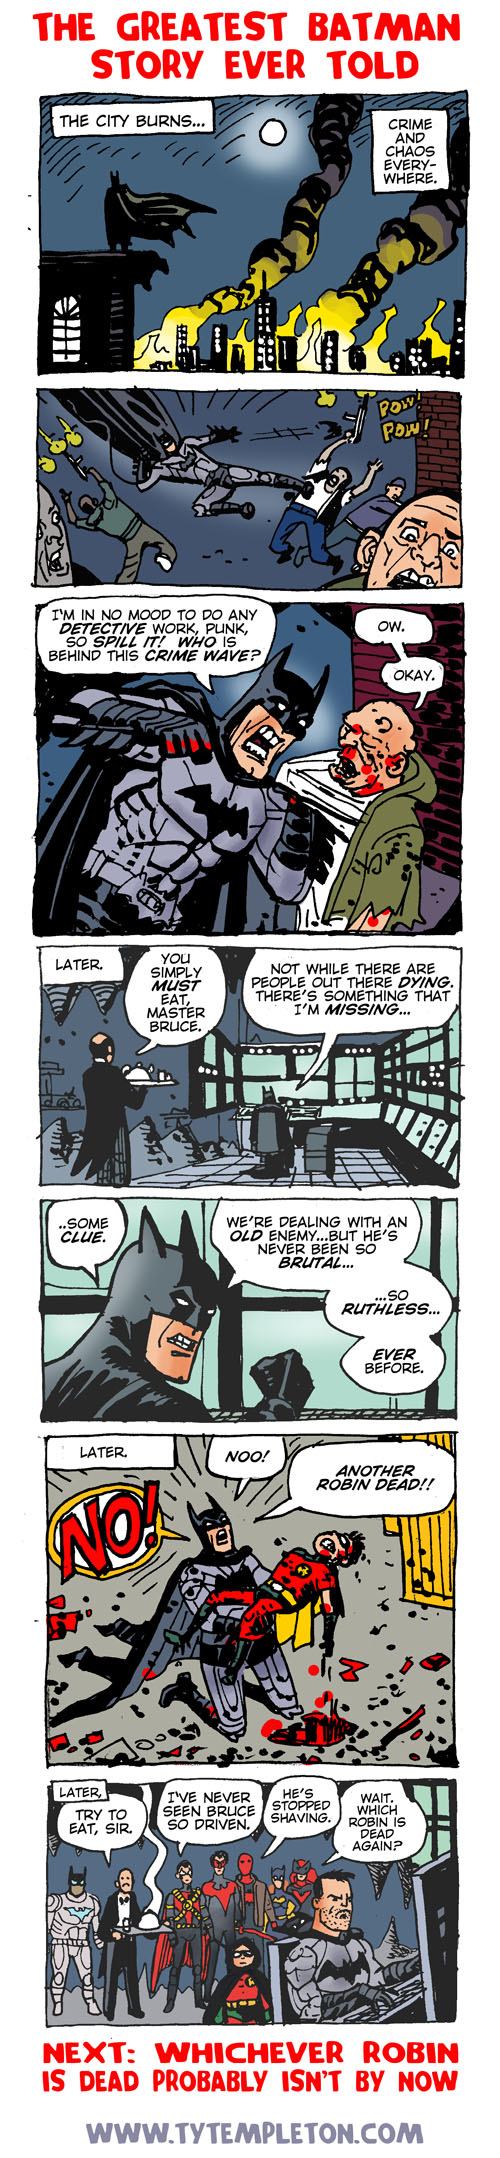 BEST BATMAN EVER